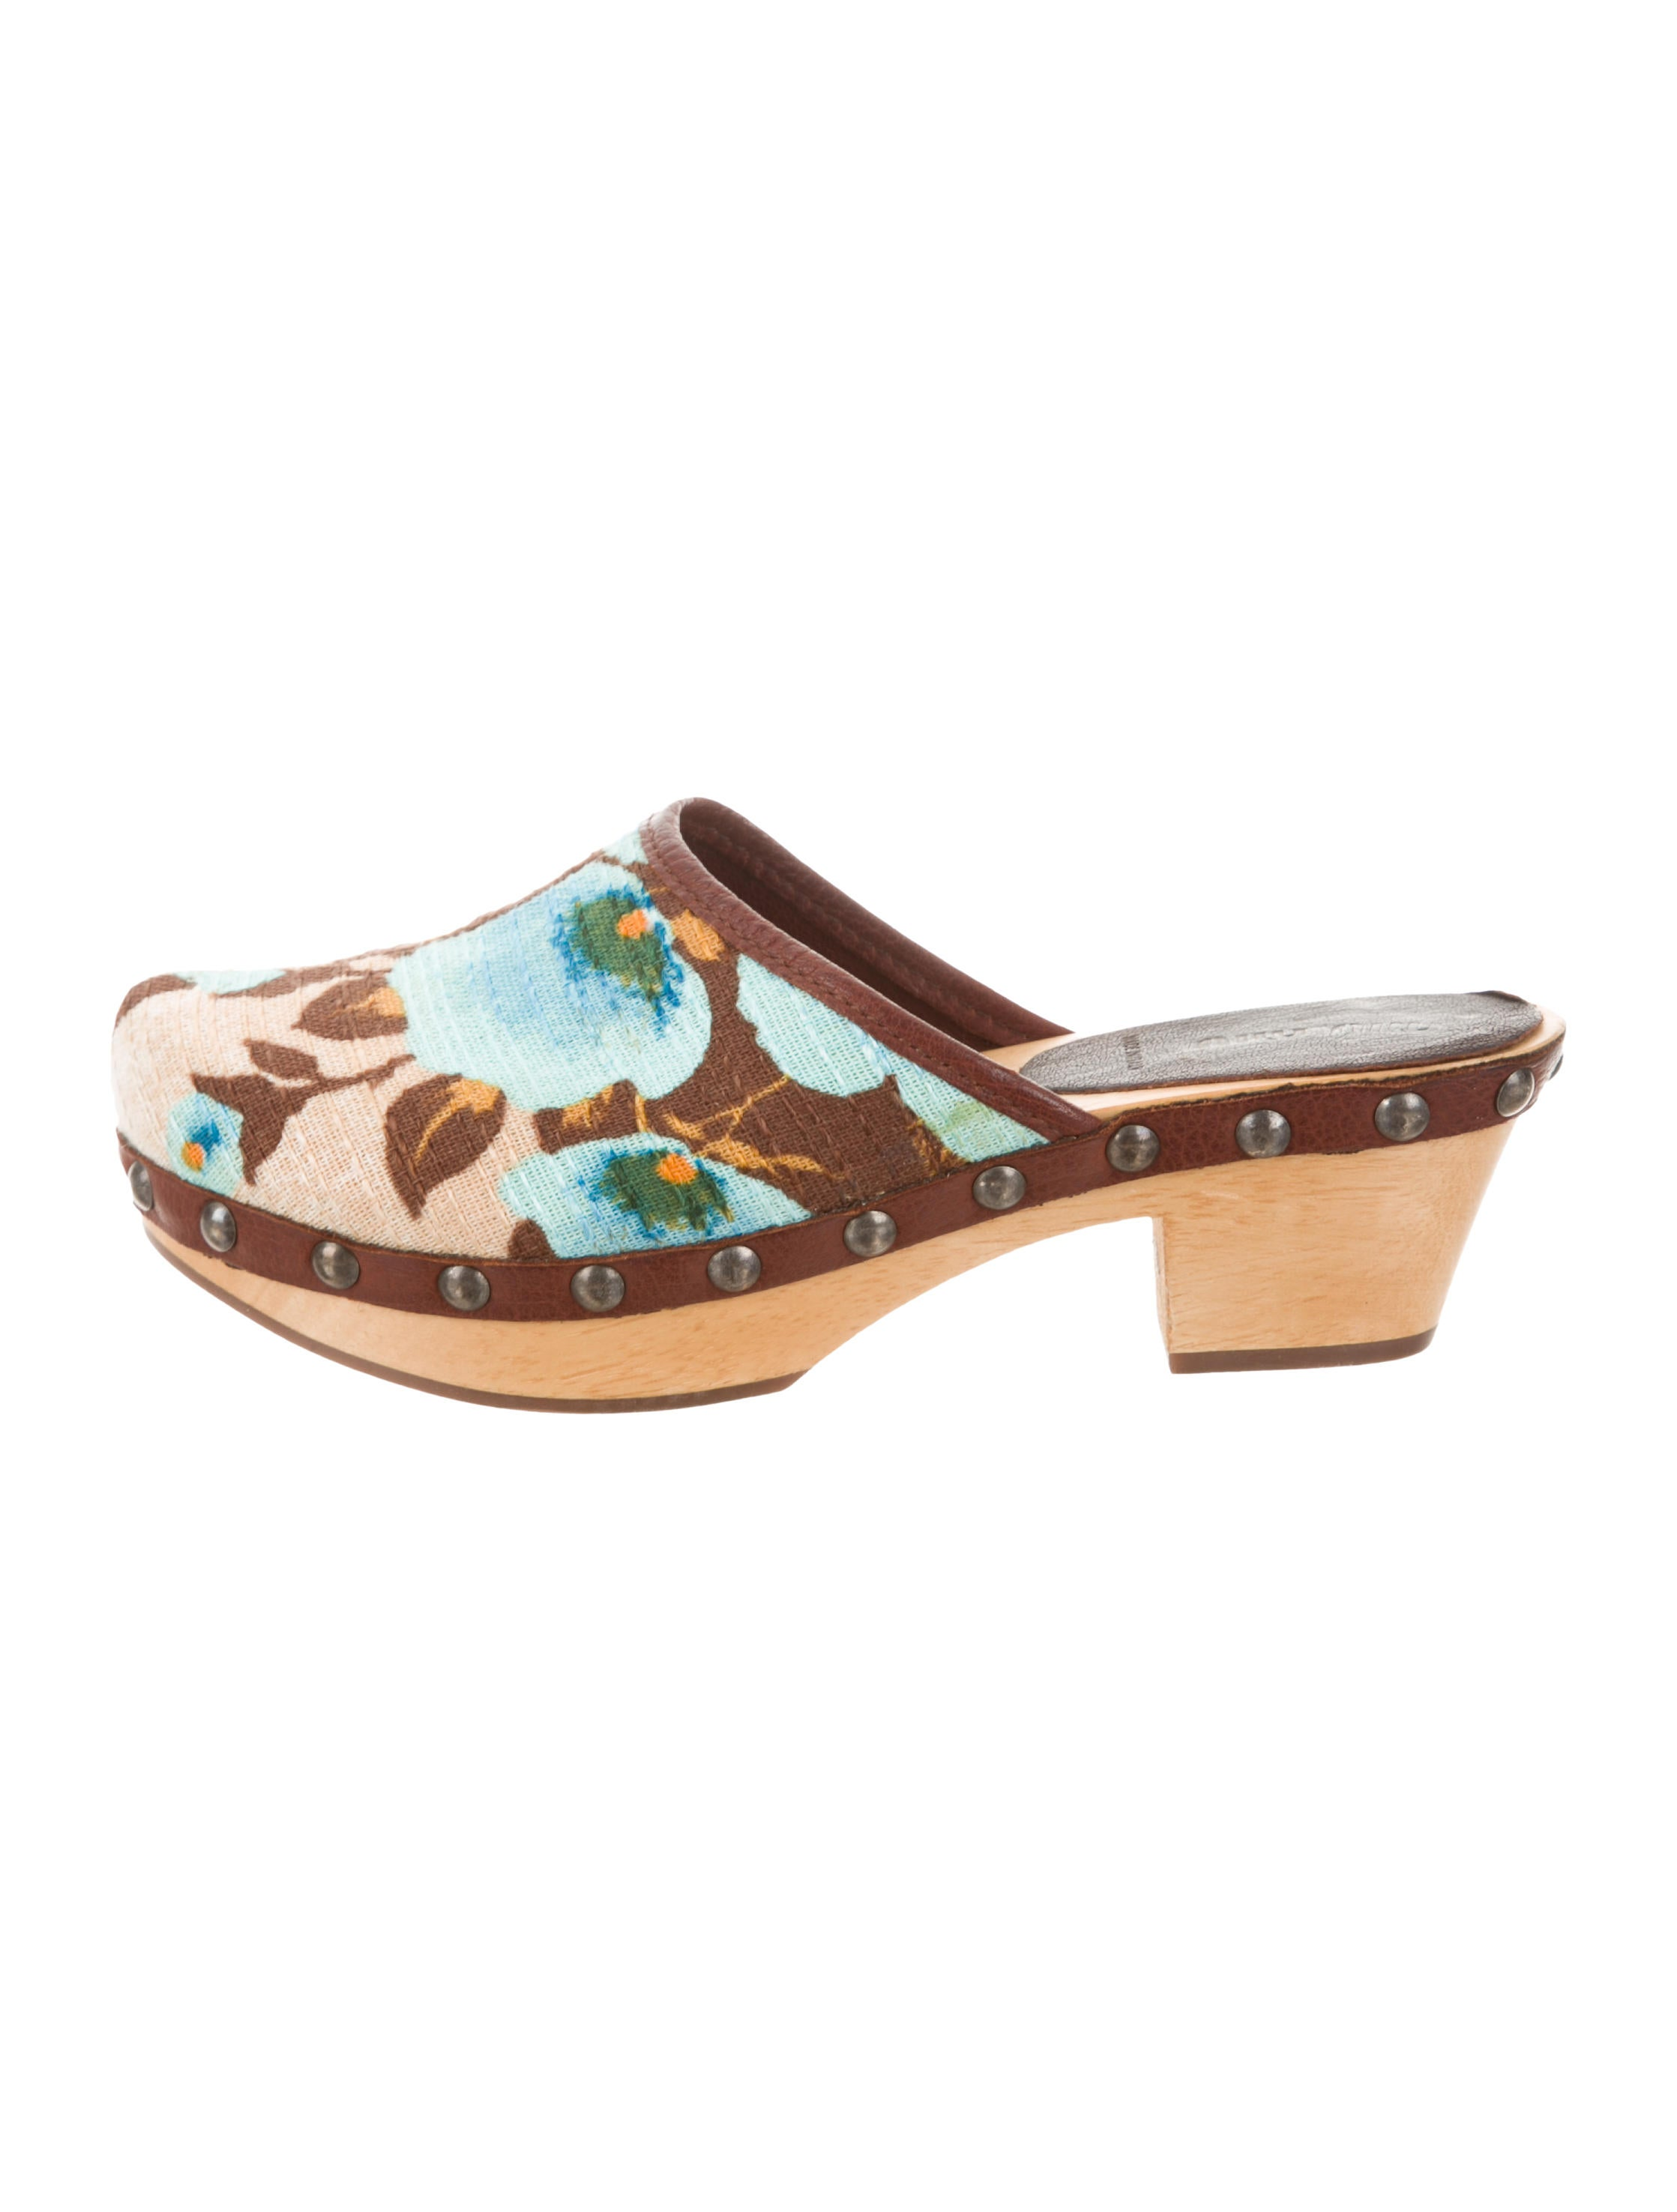 Miu Miu Printed Round-Toe Clogs cheap sale latest discount brand new unisex amazing price clearance fake cheap sale official site CjuY9kLht2